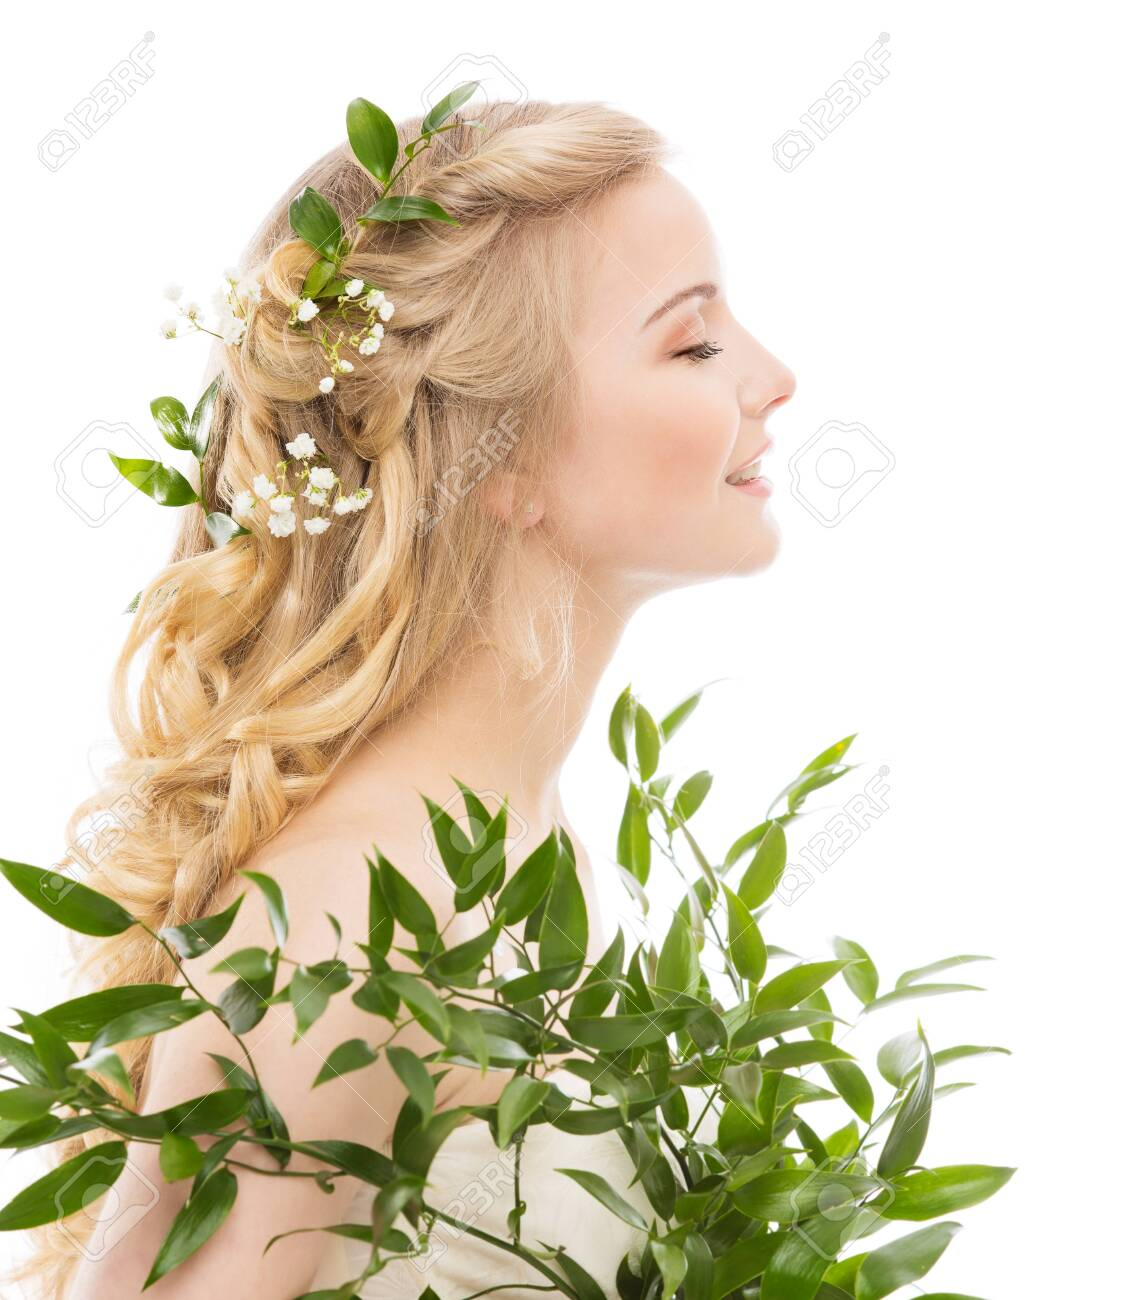 Woman Face Hair Treatment, Fresh Leaves in Hairstyle, Young Smiling Model Beauty Portrait Profile Side View on White - 141343683